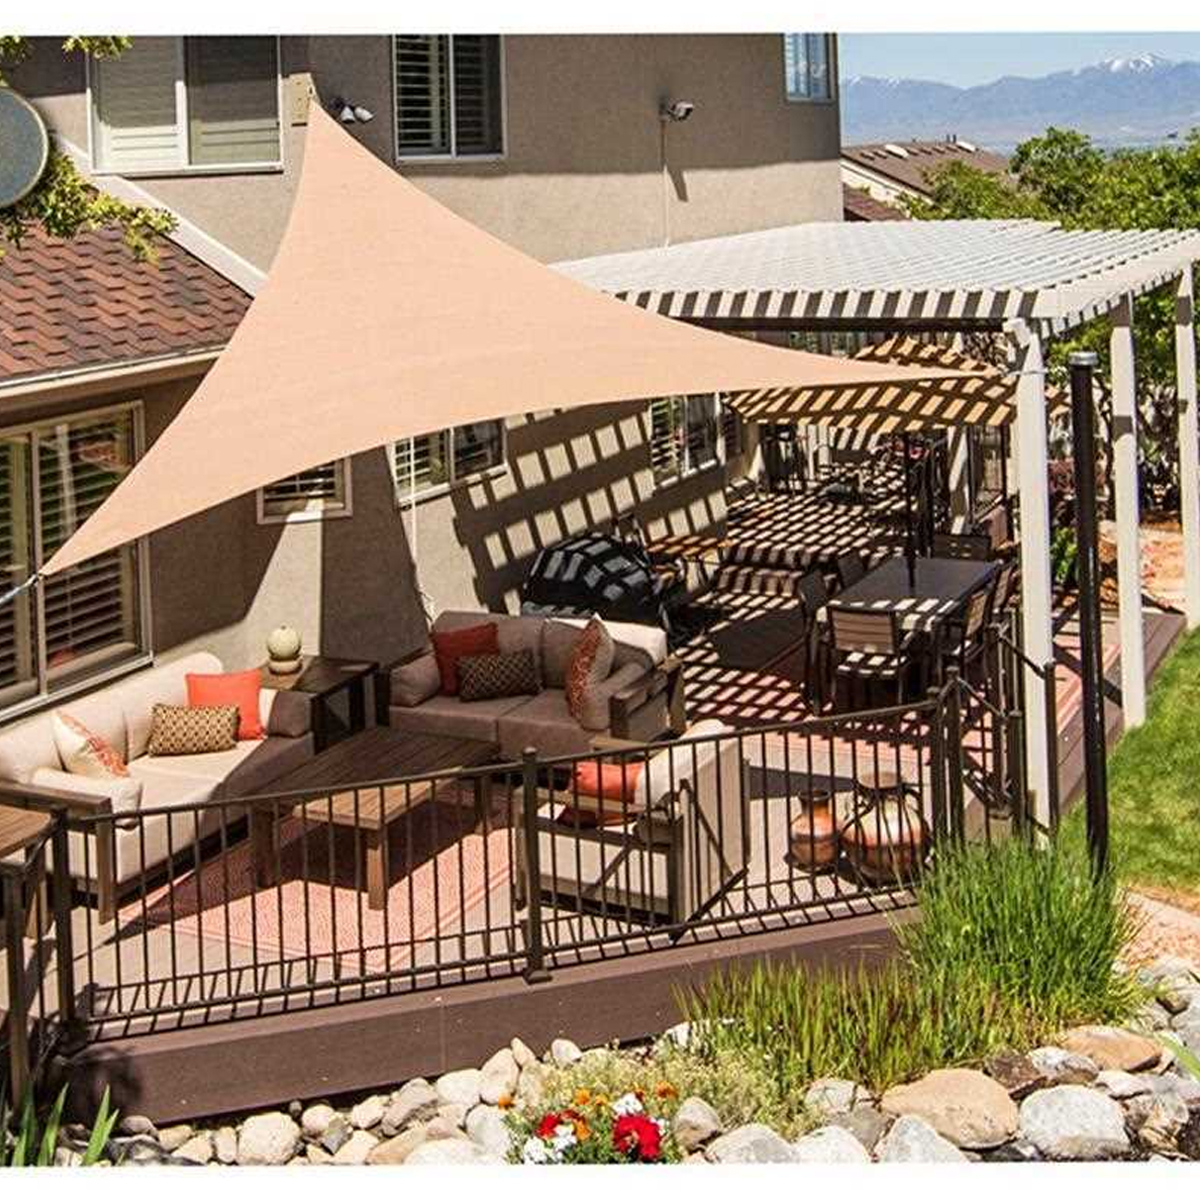 Sun Shade Sail Waterproof 420D Oxford Polyester Canopy Cover Awning Outdoor Anti-UV Protection